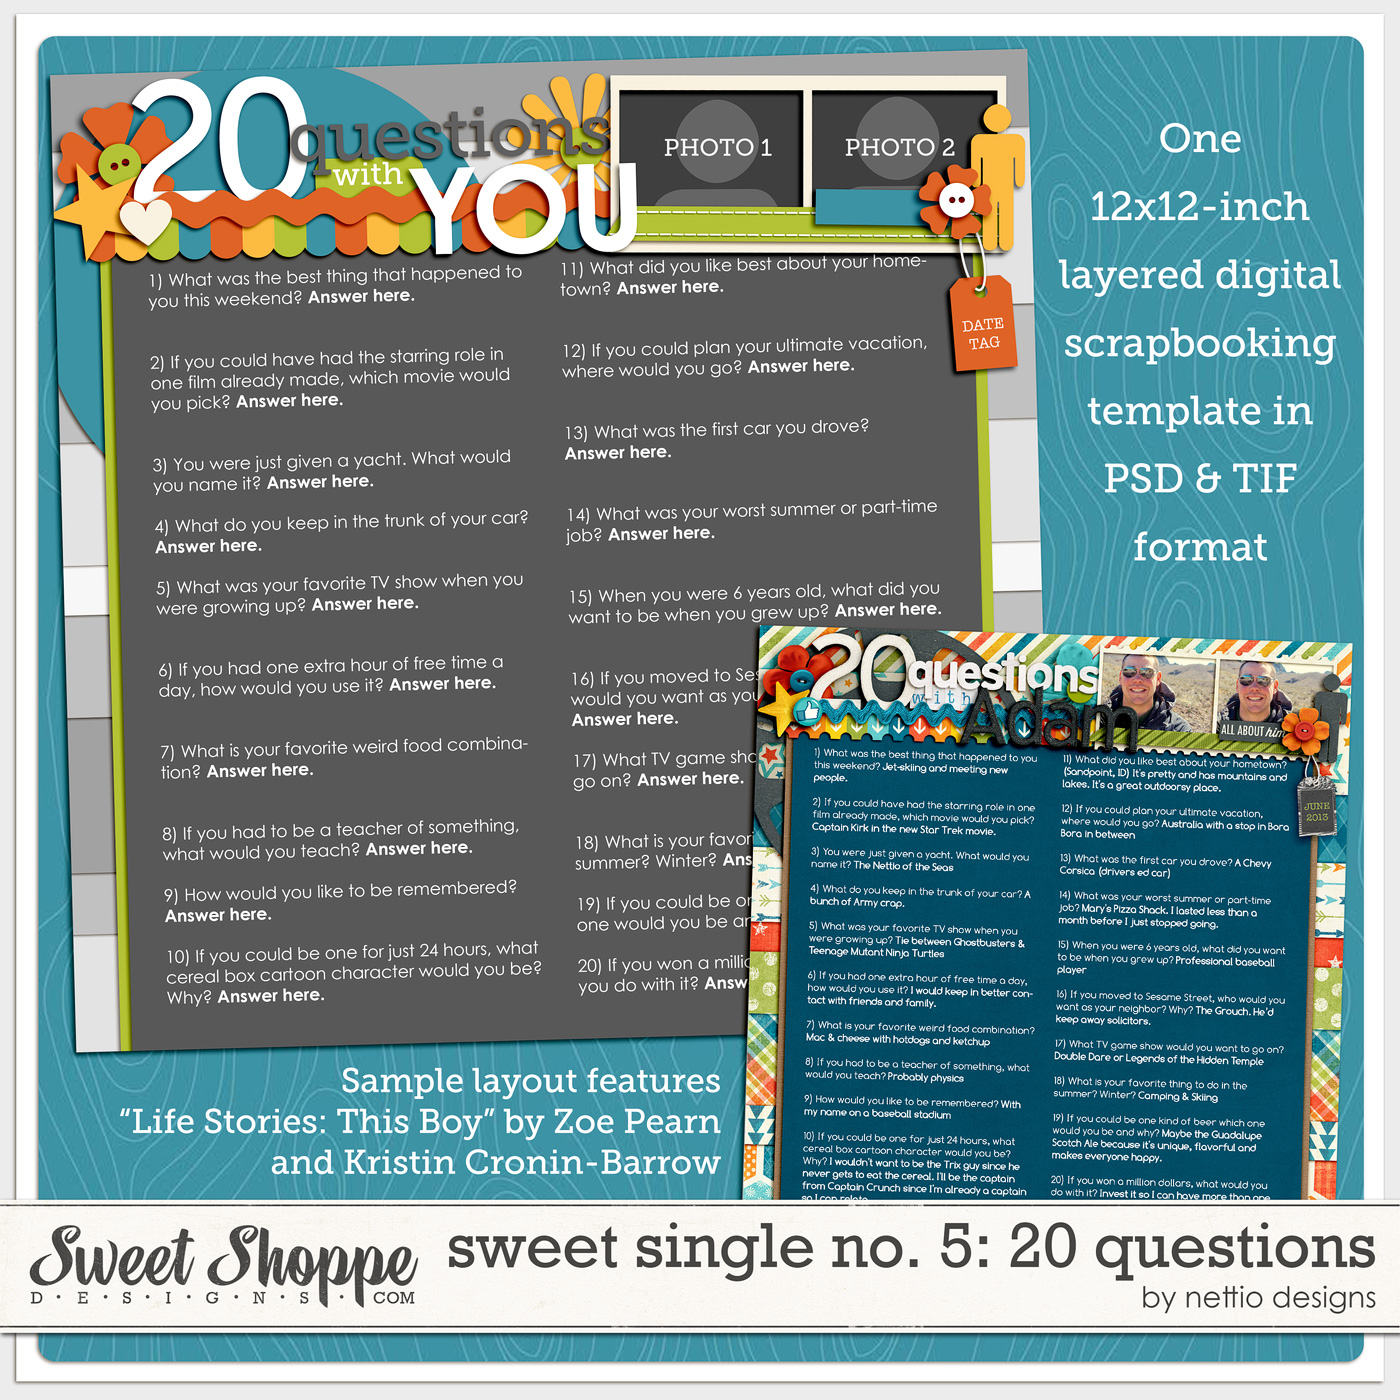 nettiodesigns_SweetSingleNo5-20Questions-preview-1400